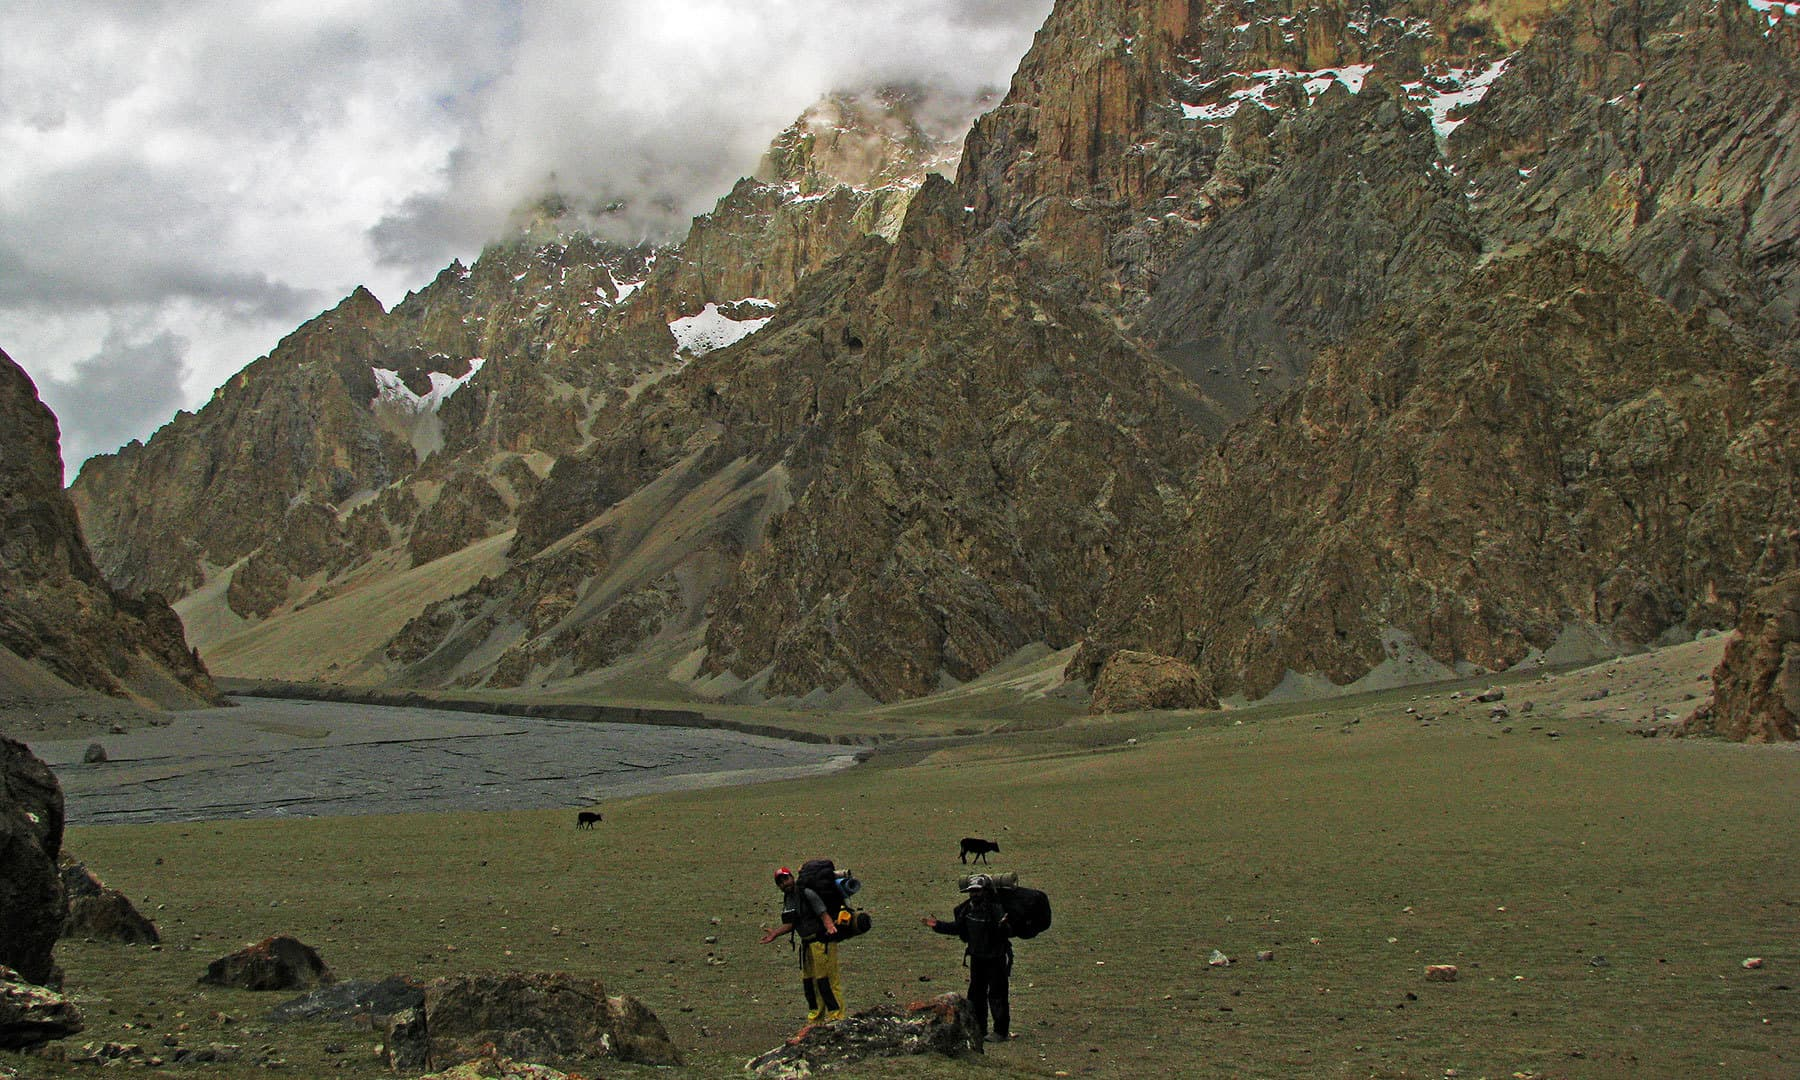 Zarthgarbein is an awesome campsite; it is ideal for Shimshali cricket, rock climbing and basic ski courses in winters.